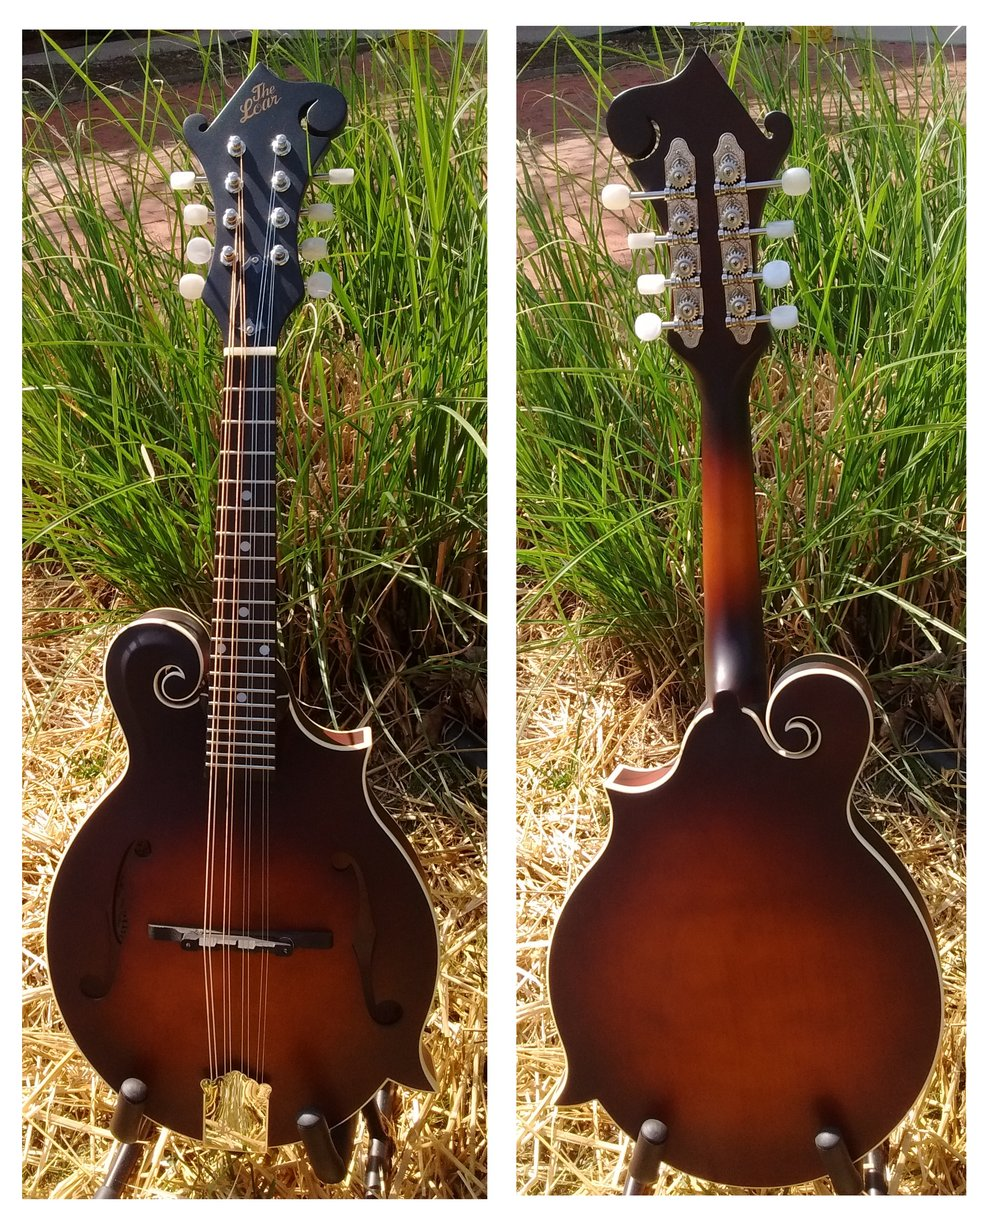 The Loar LM-310F Honey Creek Mandolin